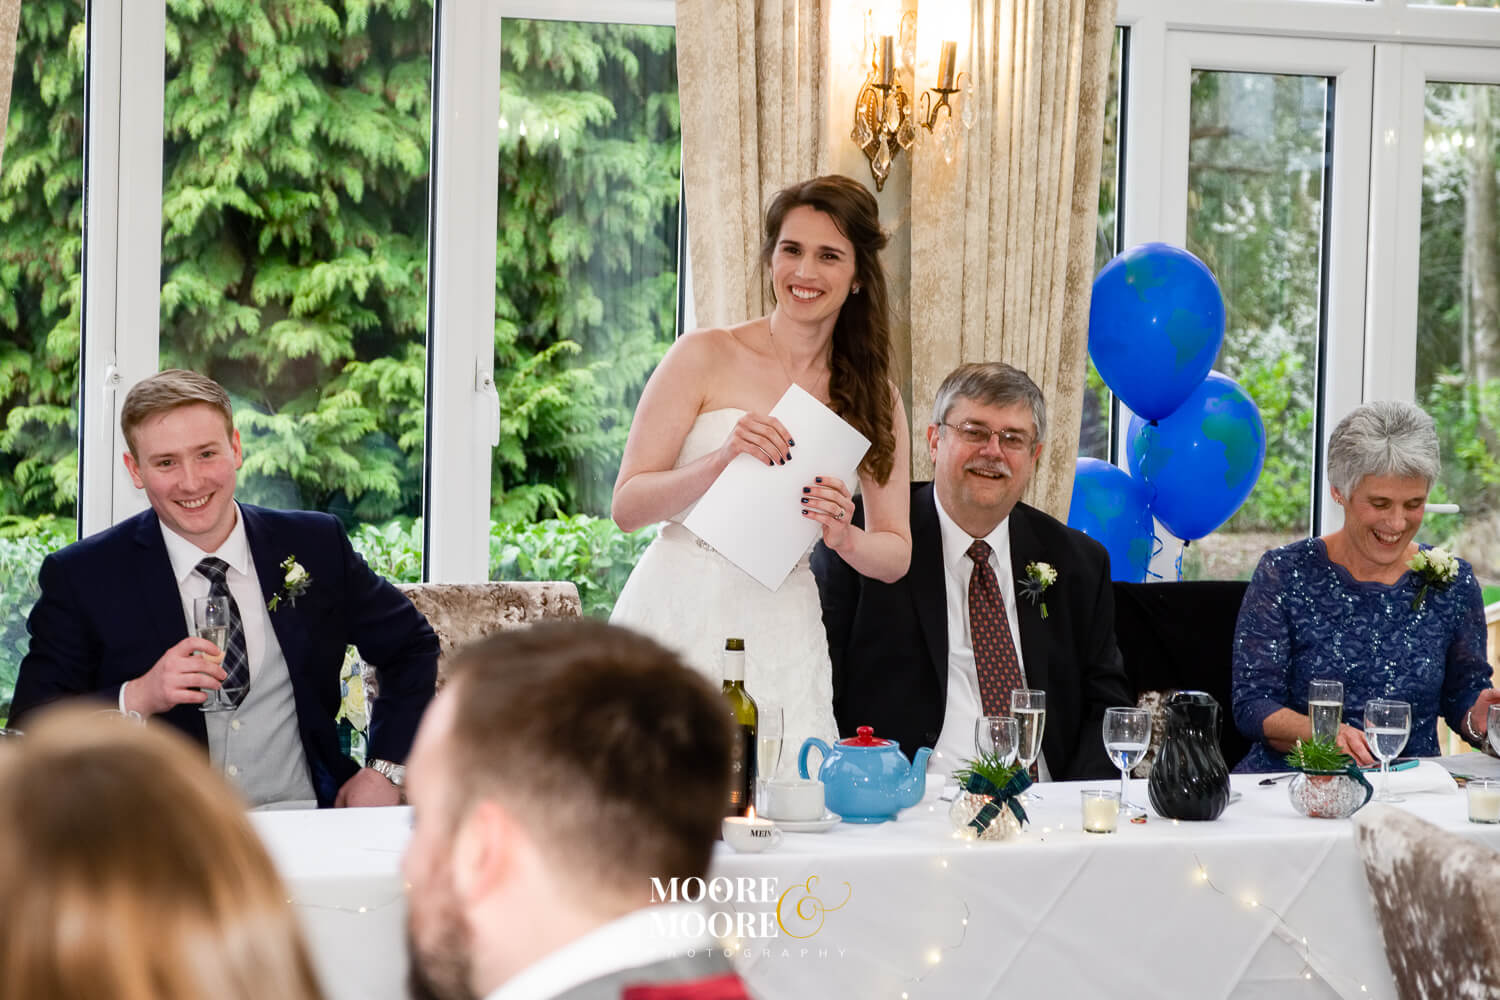 Wedding speeches by the bride. Bride & Groom photos. Farnham House Hotel Wedding Photography by Moore & Moore Photography, Fleet, Hampshire